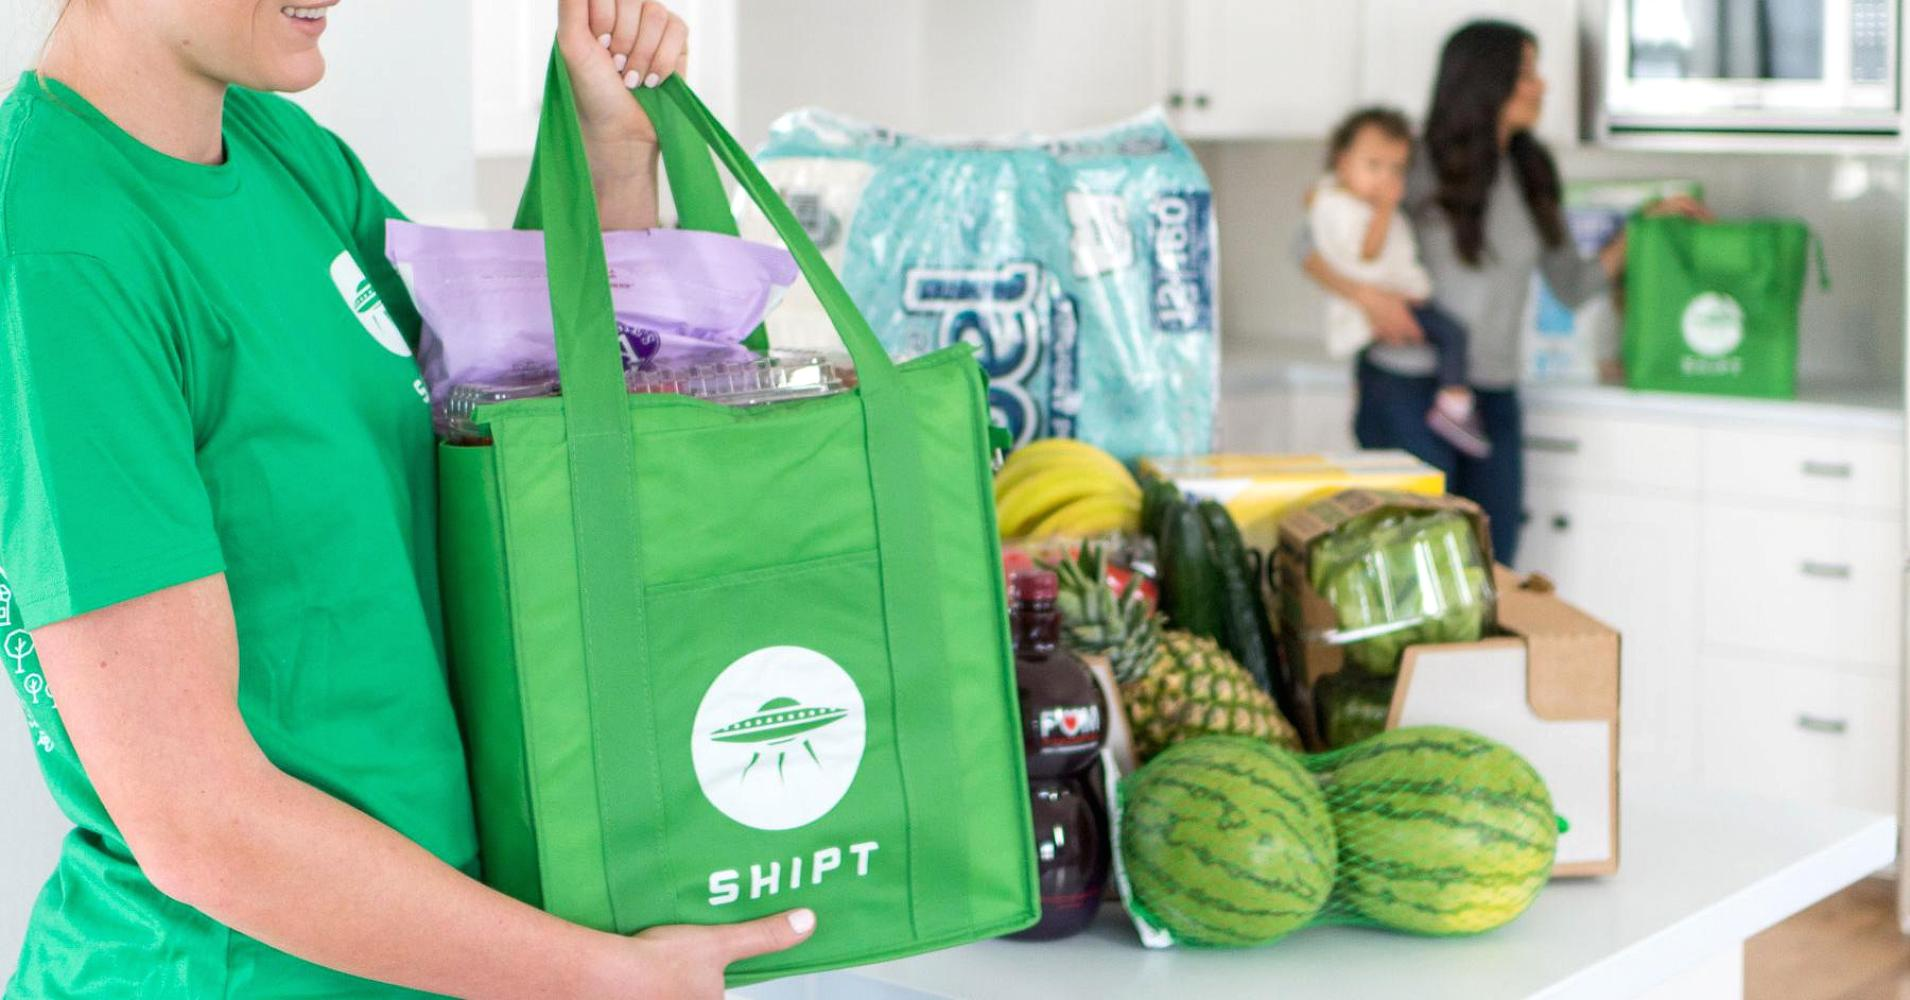 Target to Buy Grocery Delivery Startup Shipt for $550 Million